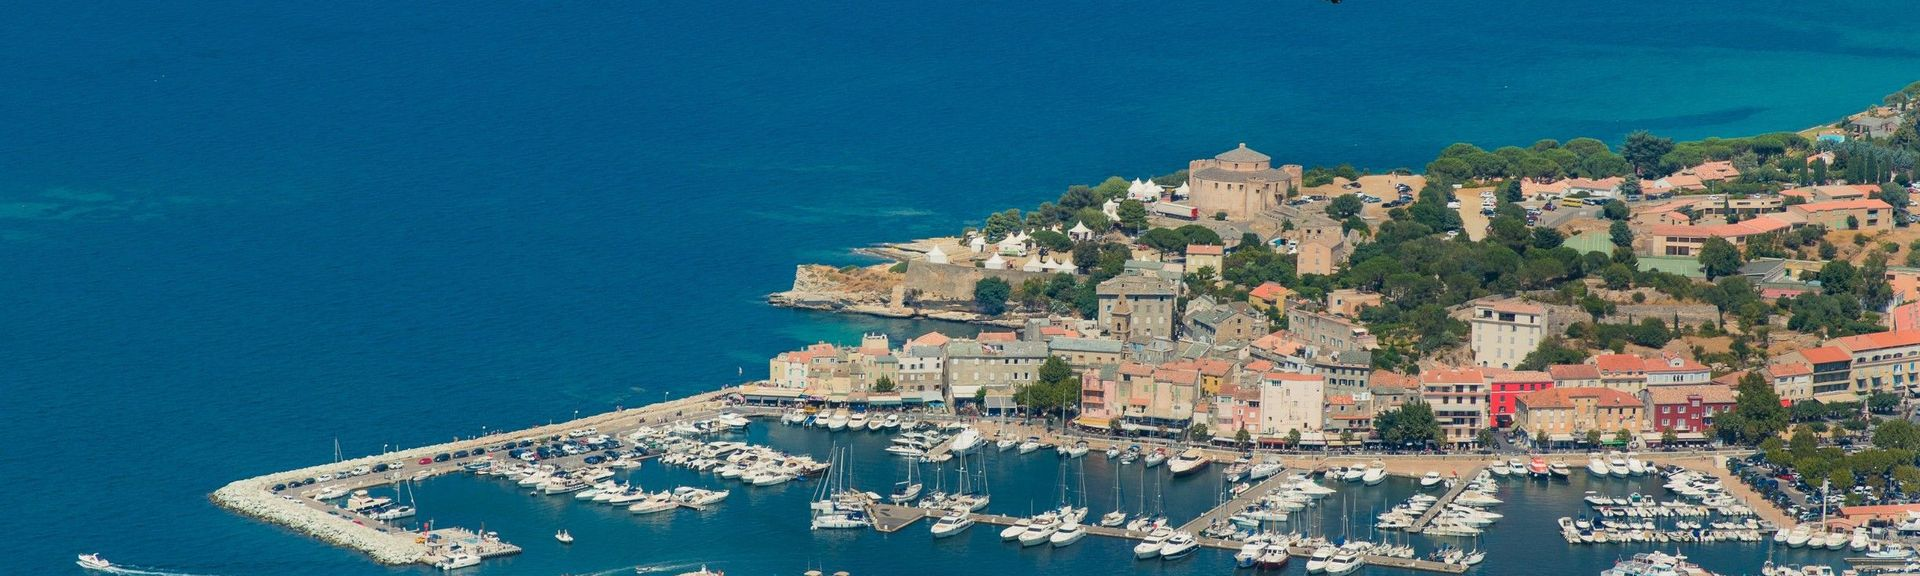 Saint-Florent, Haute-Corse, France